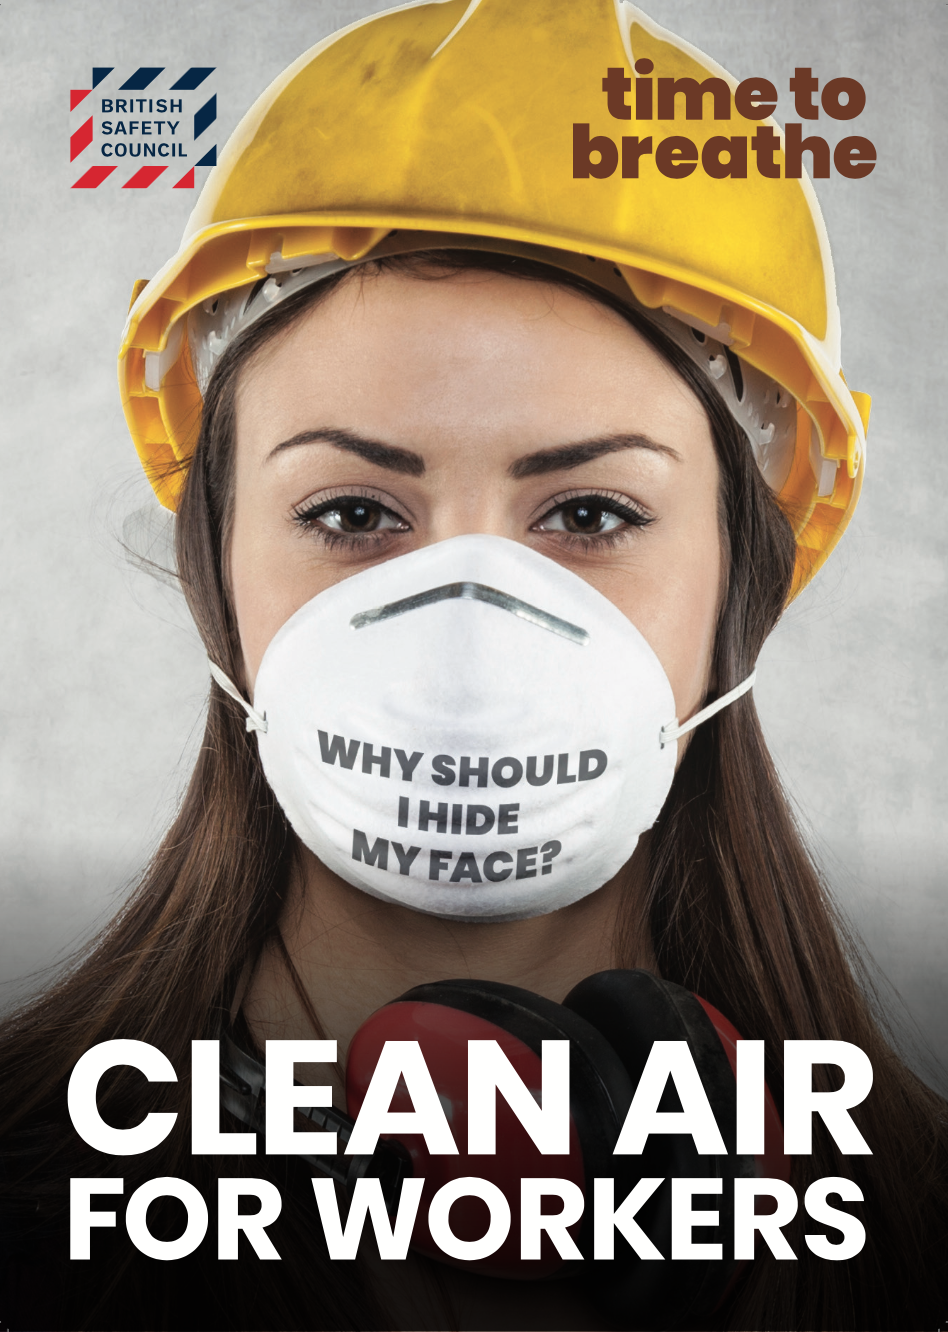 The British Safety Council's Time to Breathe campaign poster.